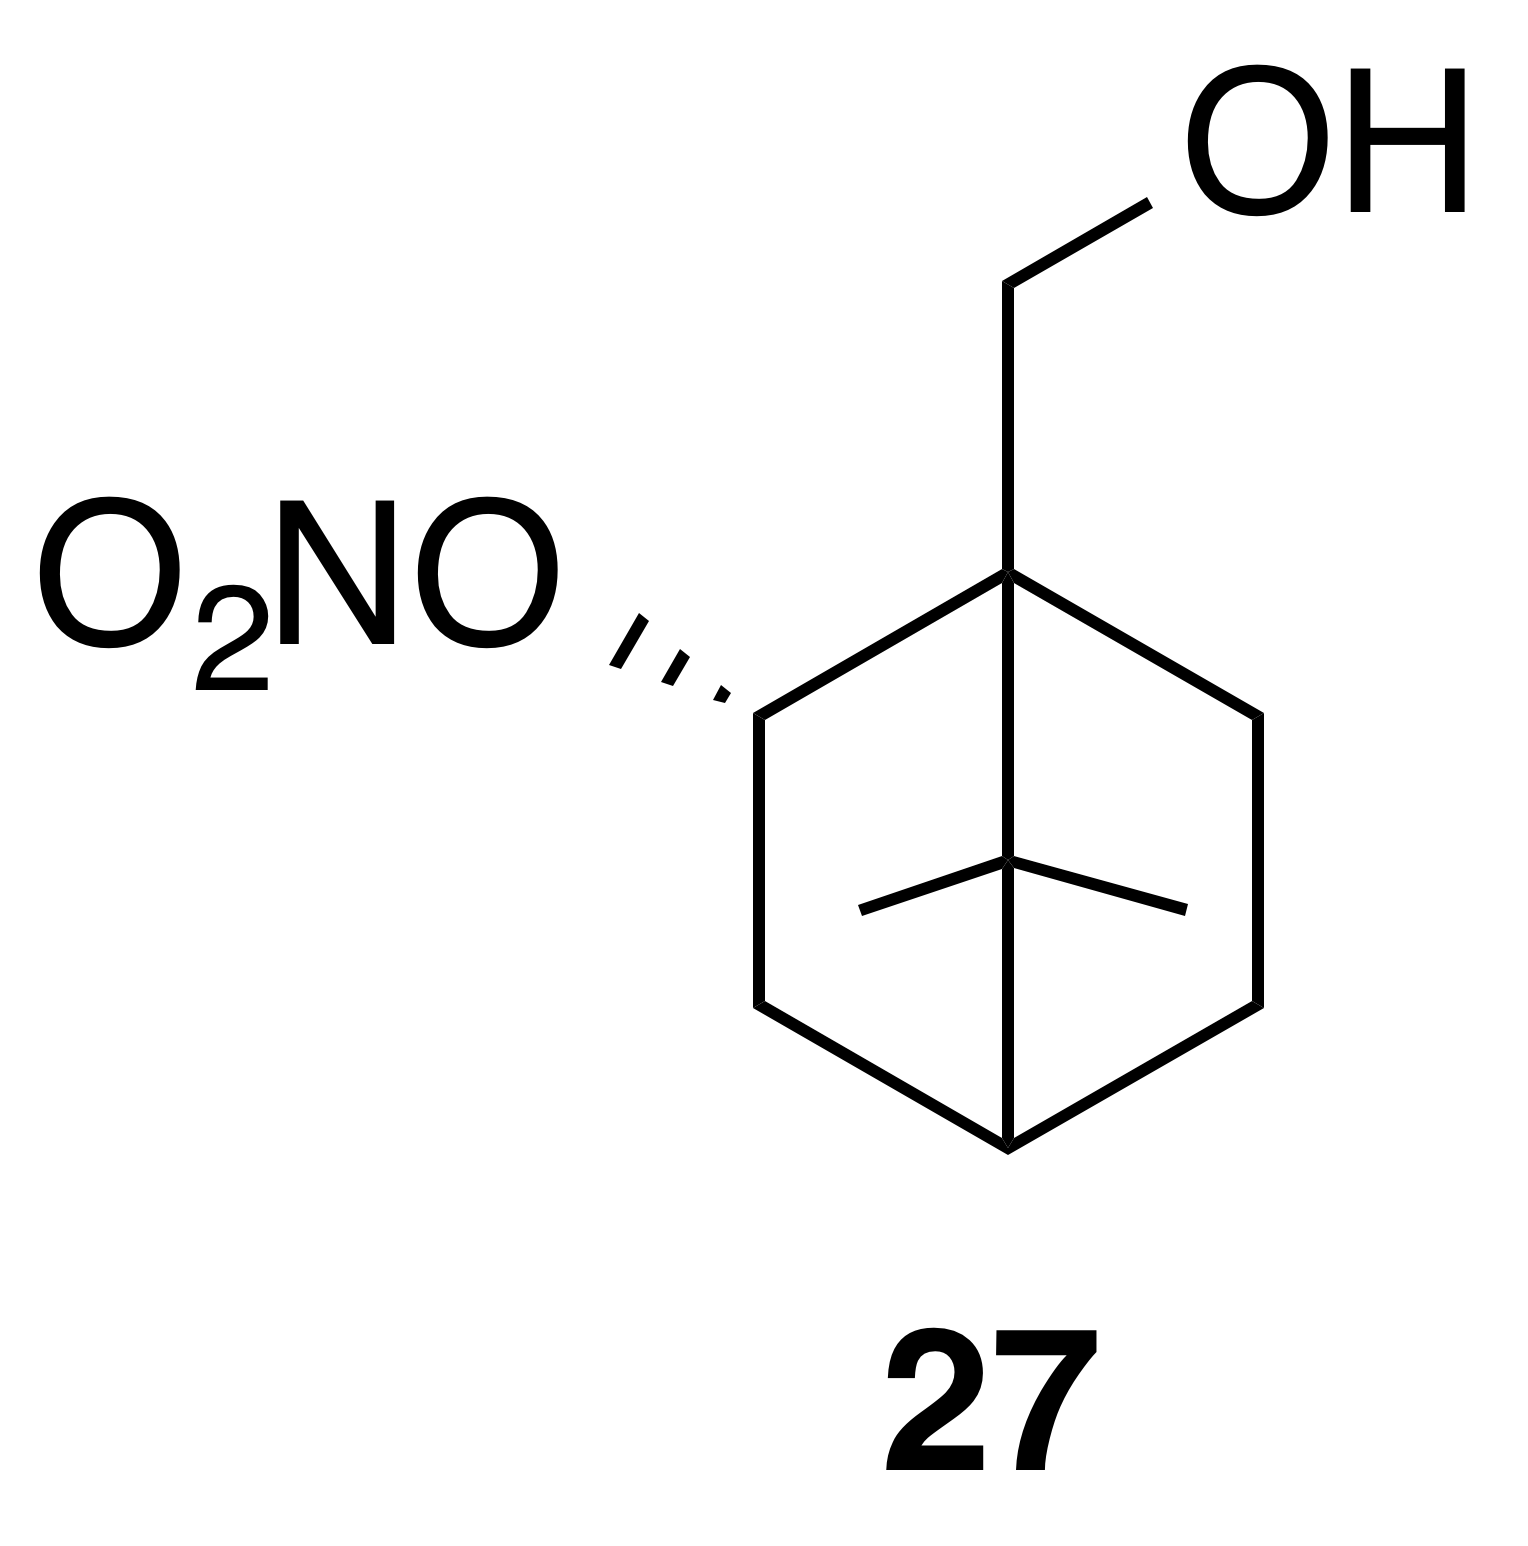 https://www.atmos-chem-phys.net/20/4241/2020/acp-20-4241-2020-g23